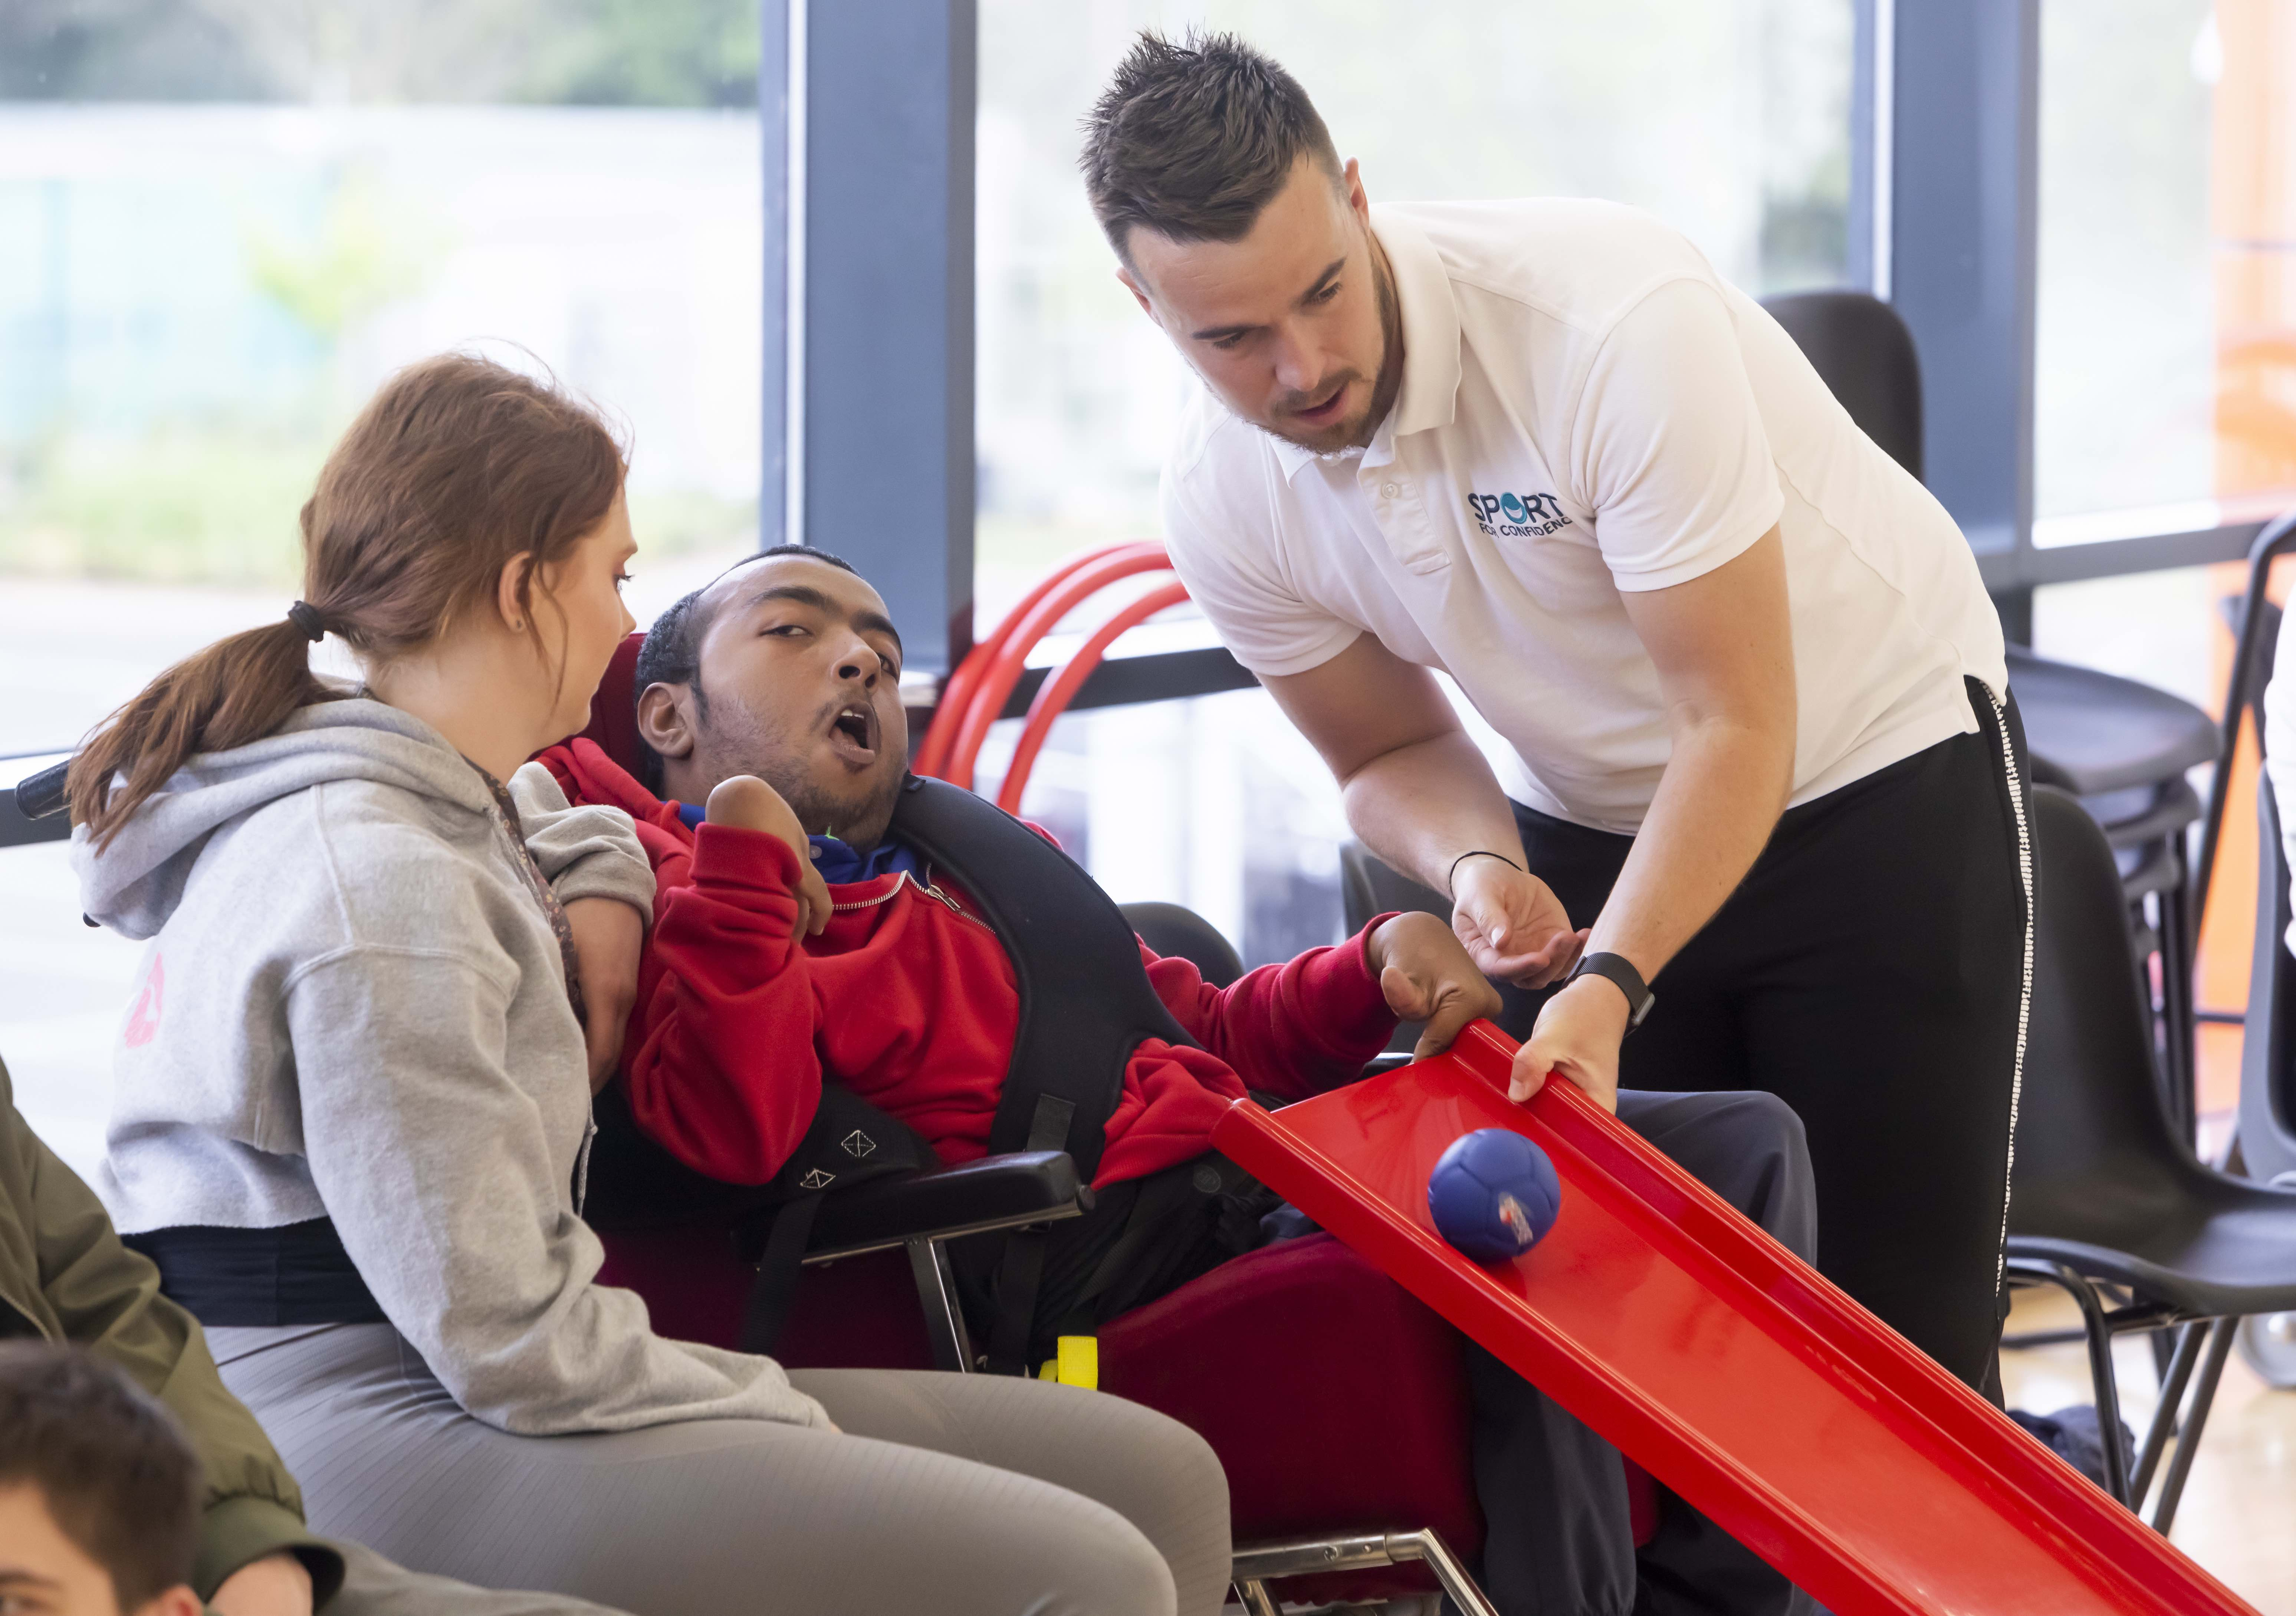 Sport for Confidence client session shows occupational therapist supporting a disabled man with Boccia.